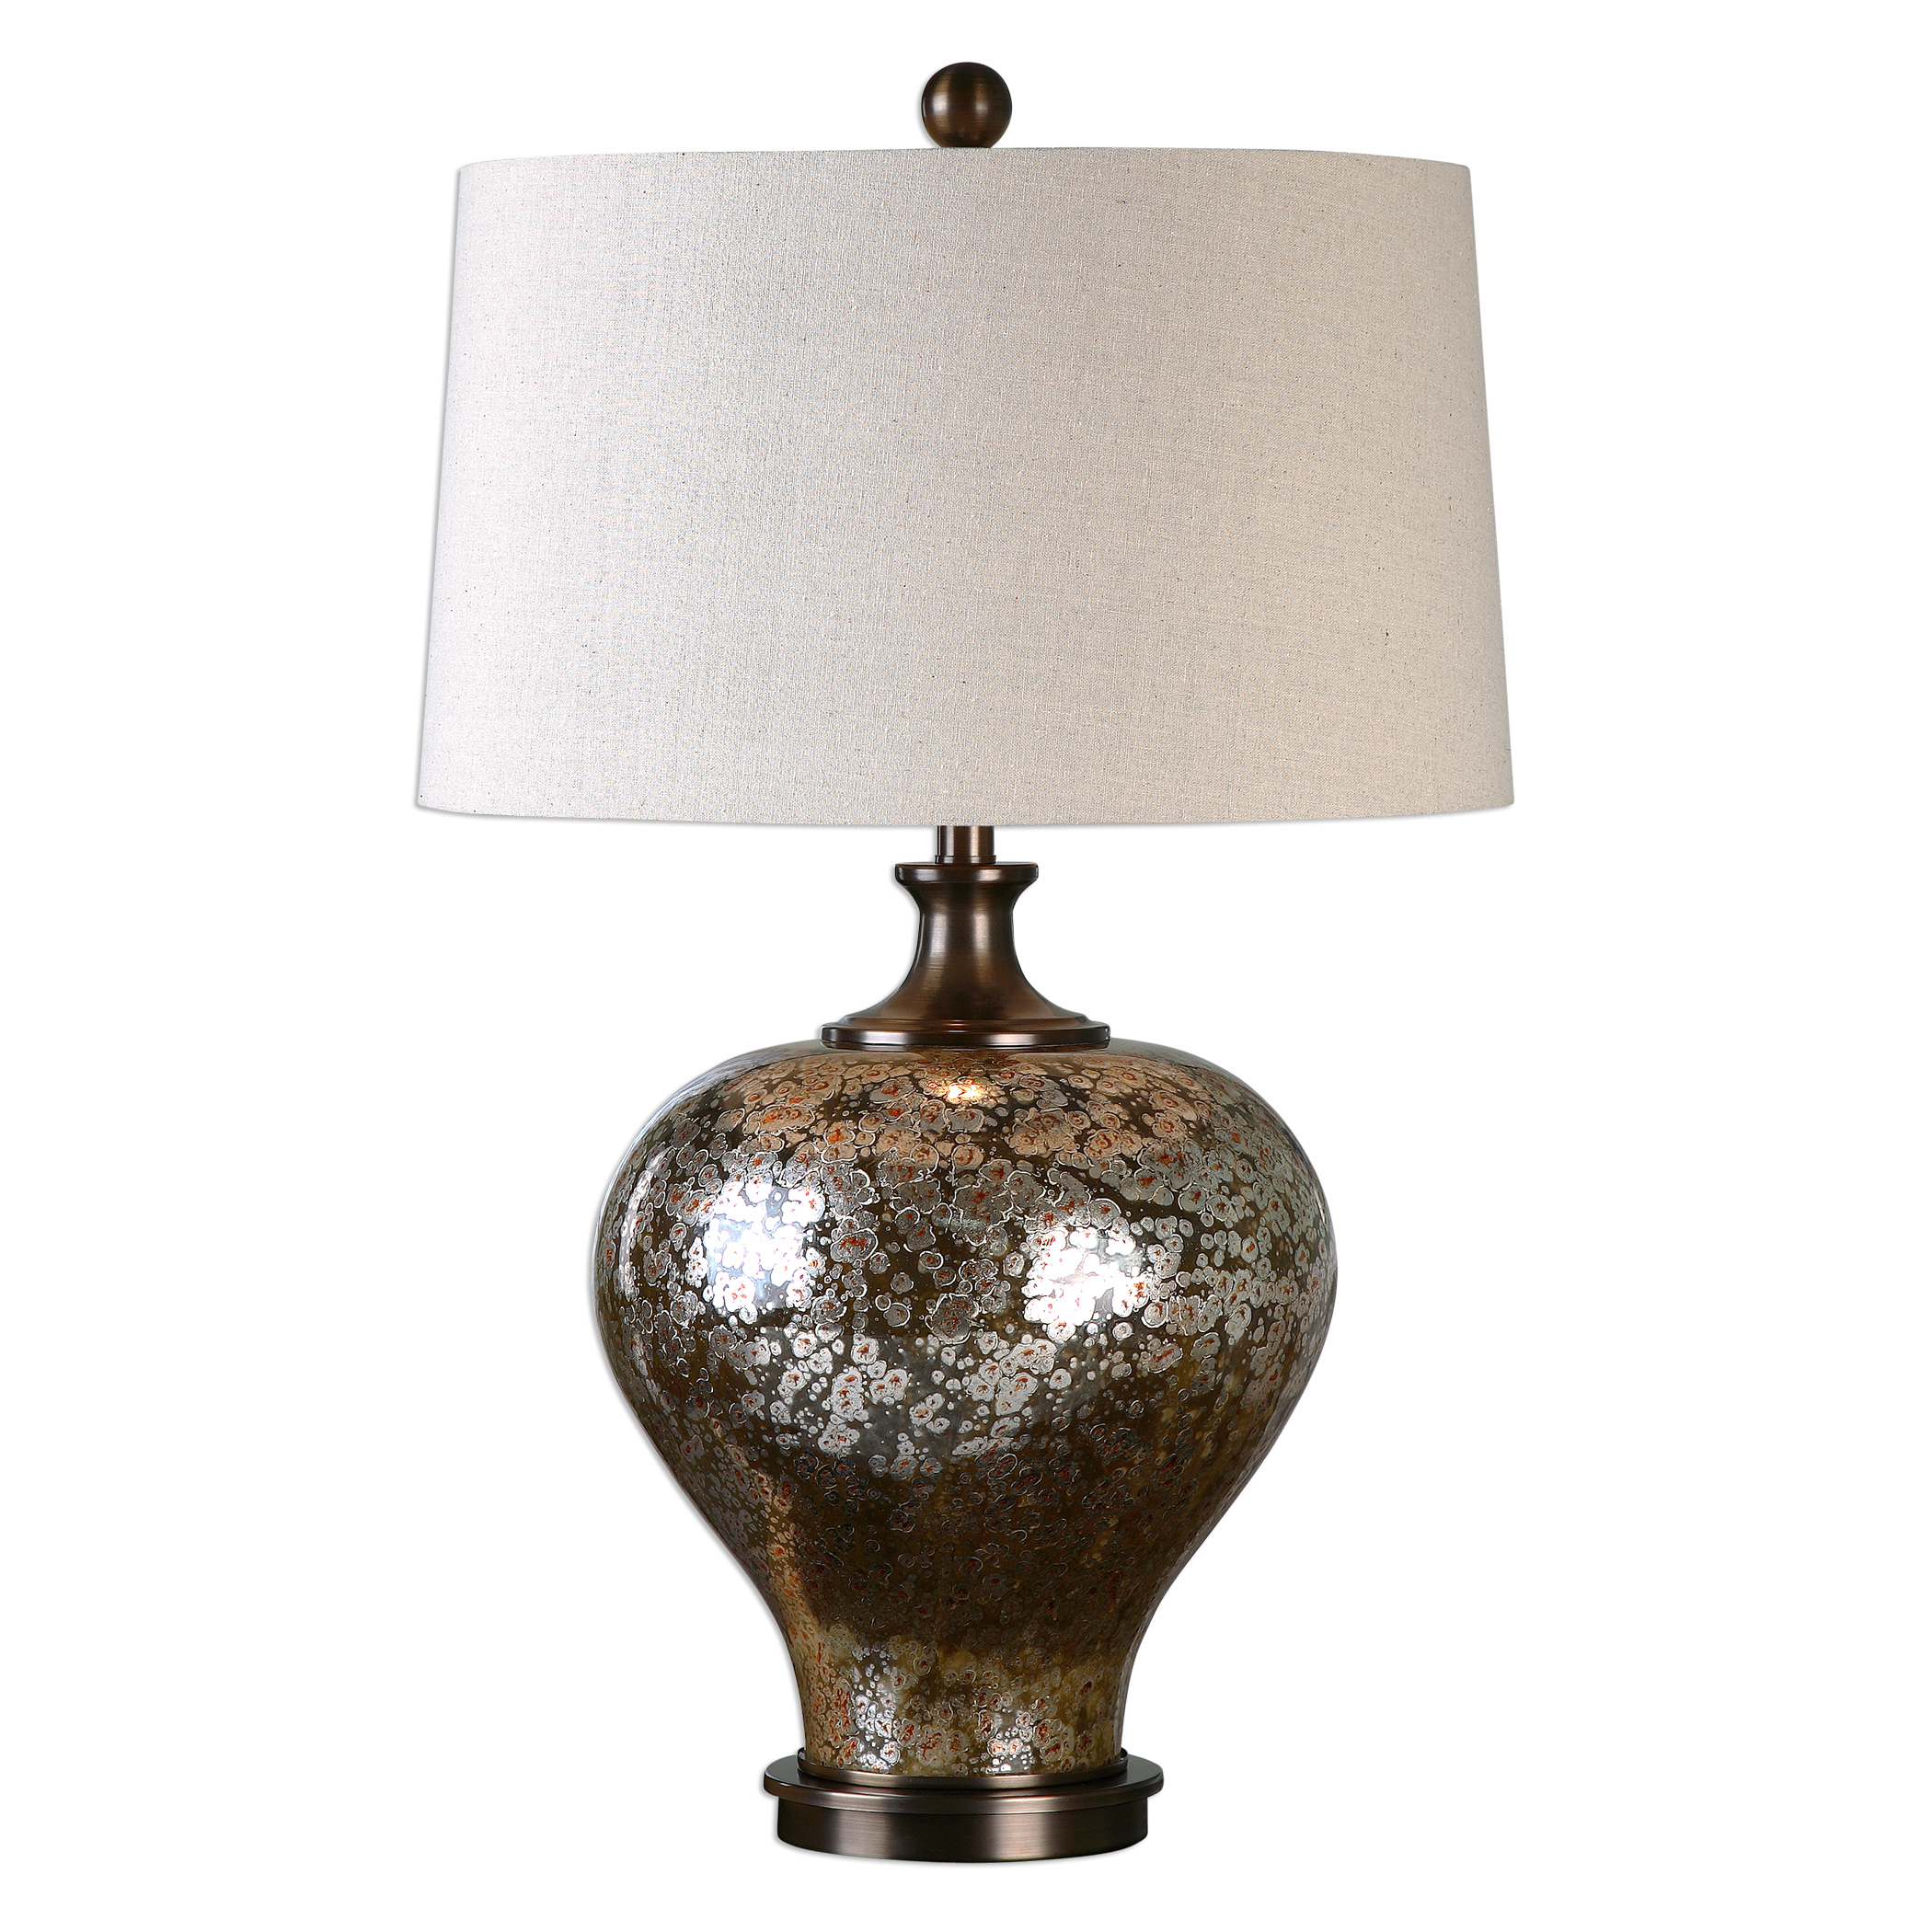 Uttermost Table Lamps 27154 1 Liro Mercury Glass Table